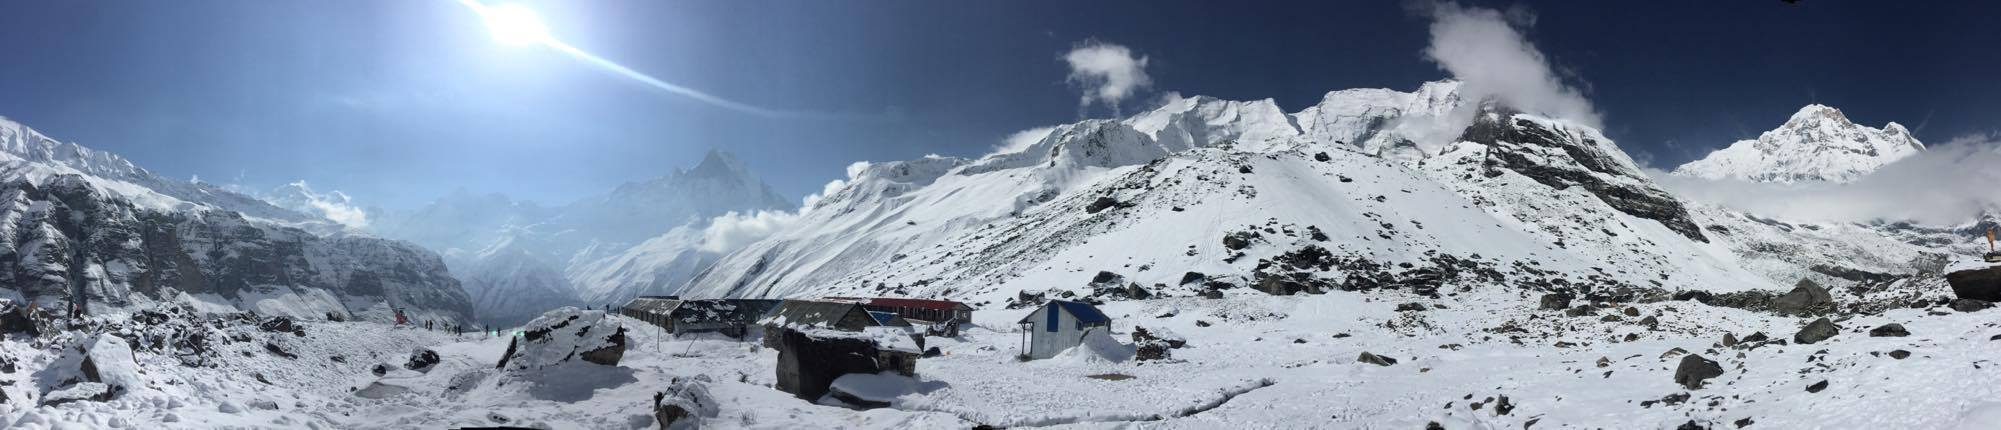 Annapurna Base Camp Panorama - Look back to the sacred machapuchhare